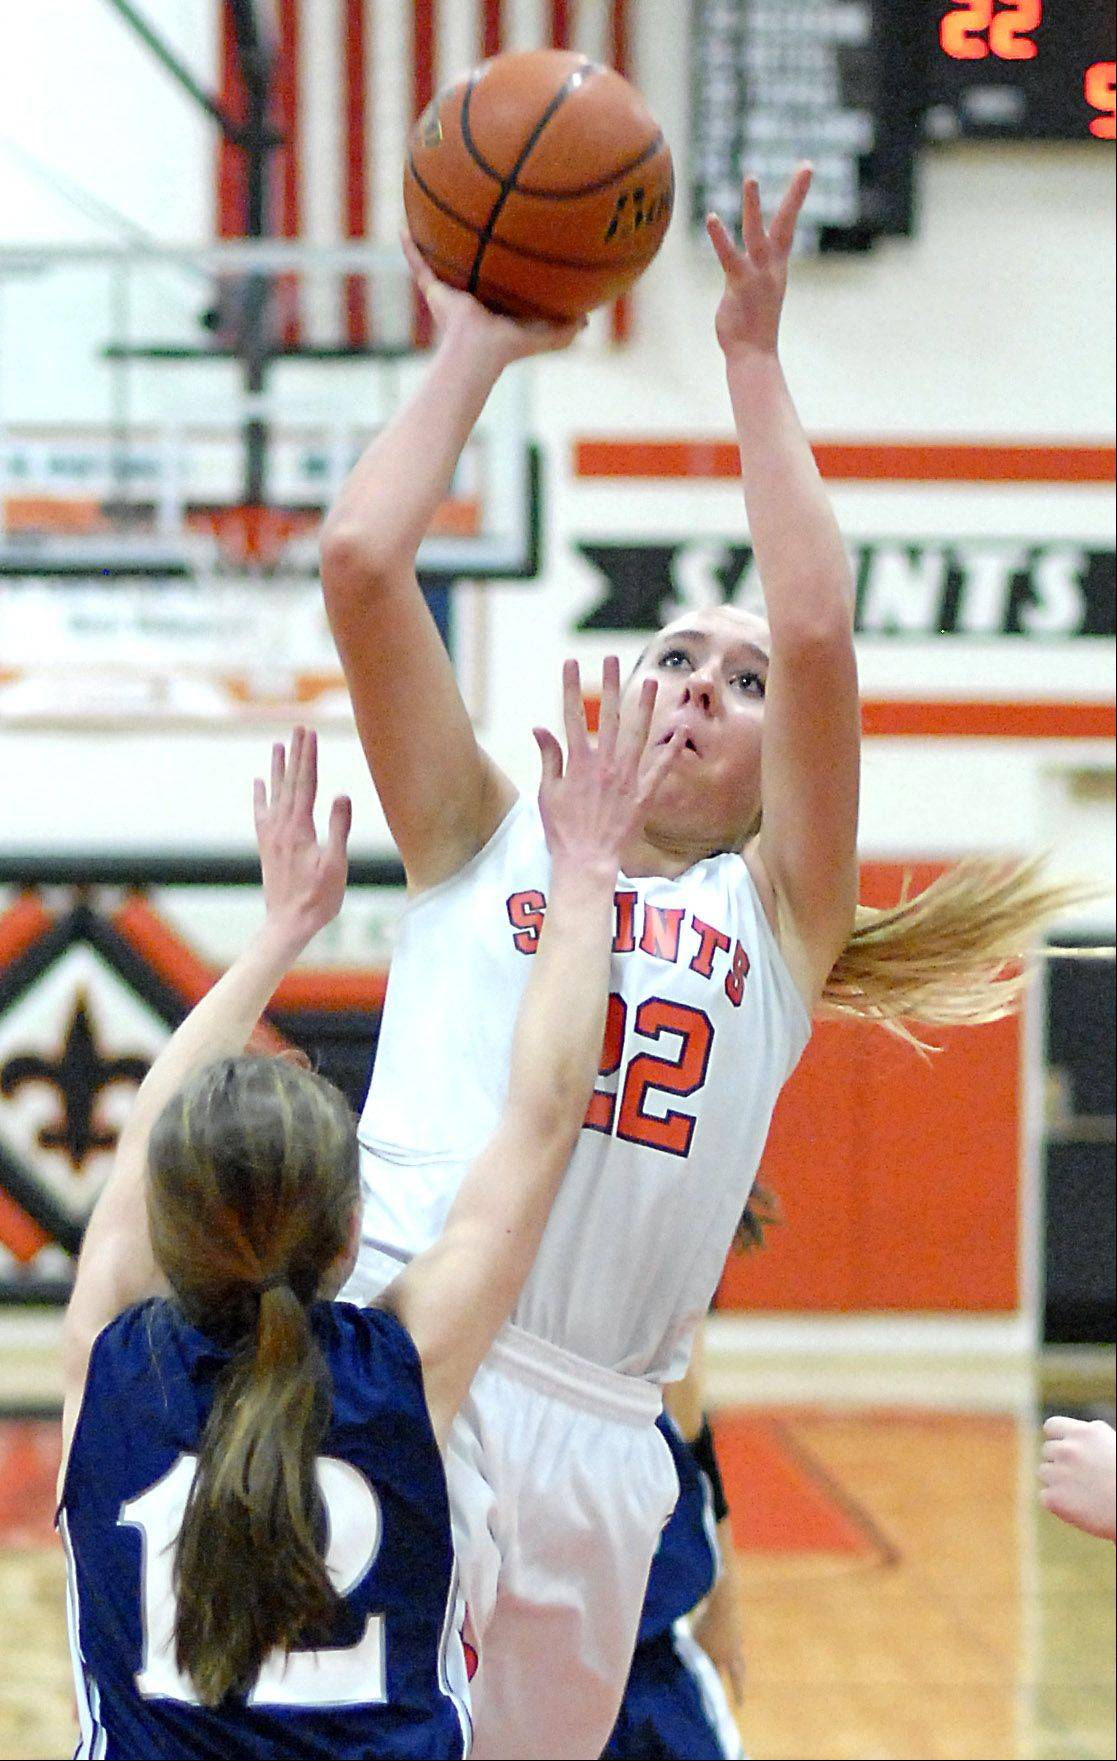 St. Charles East's Anna Bartels sinks a shot over West Chicago's Mae Elizabeth Gimre in the second quarter.